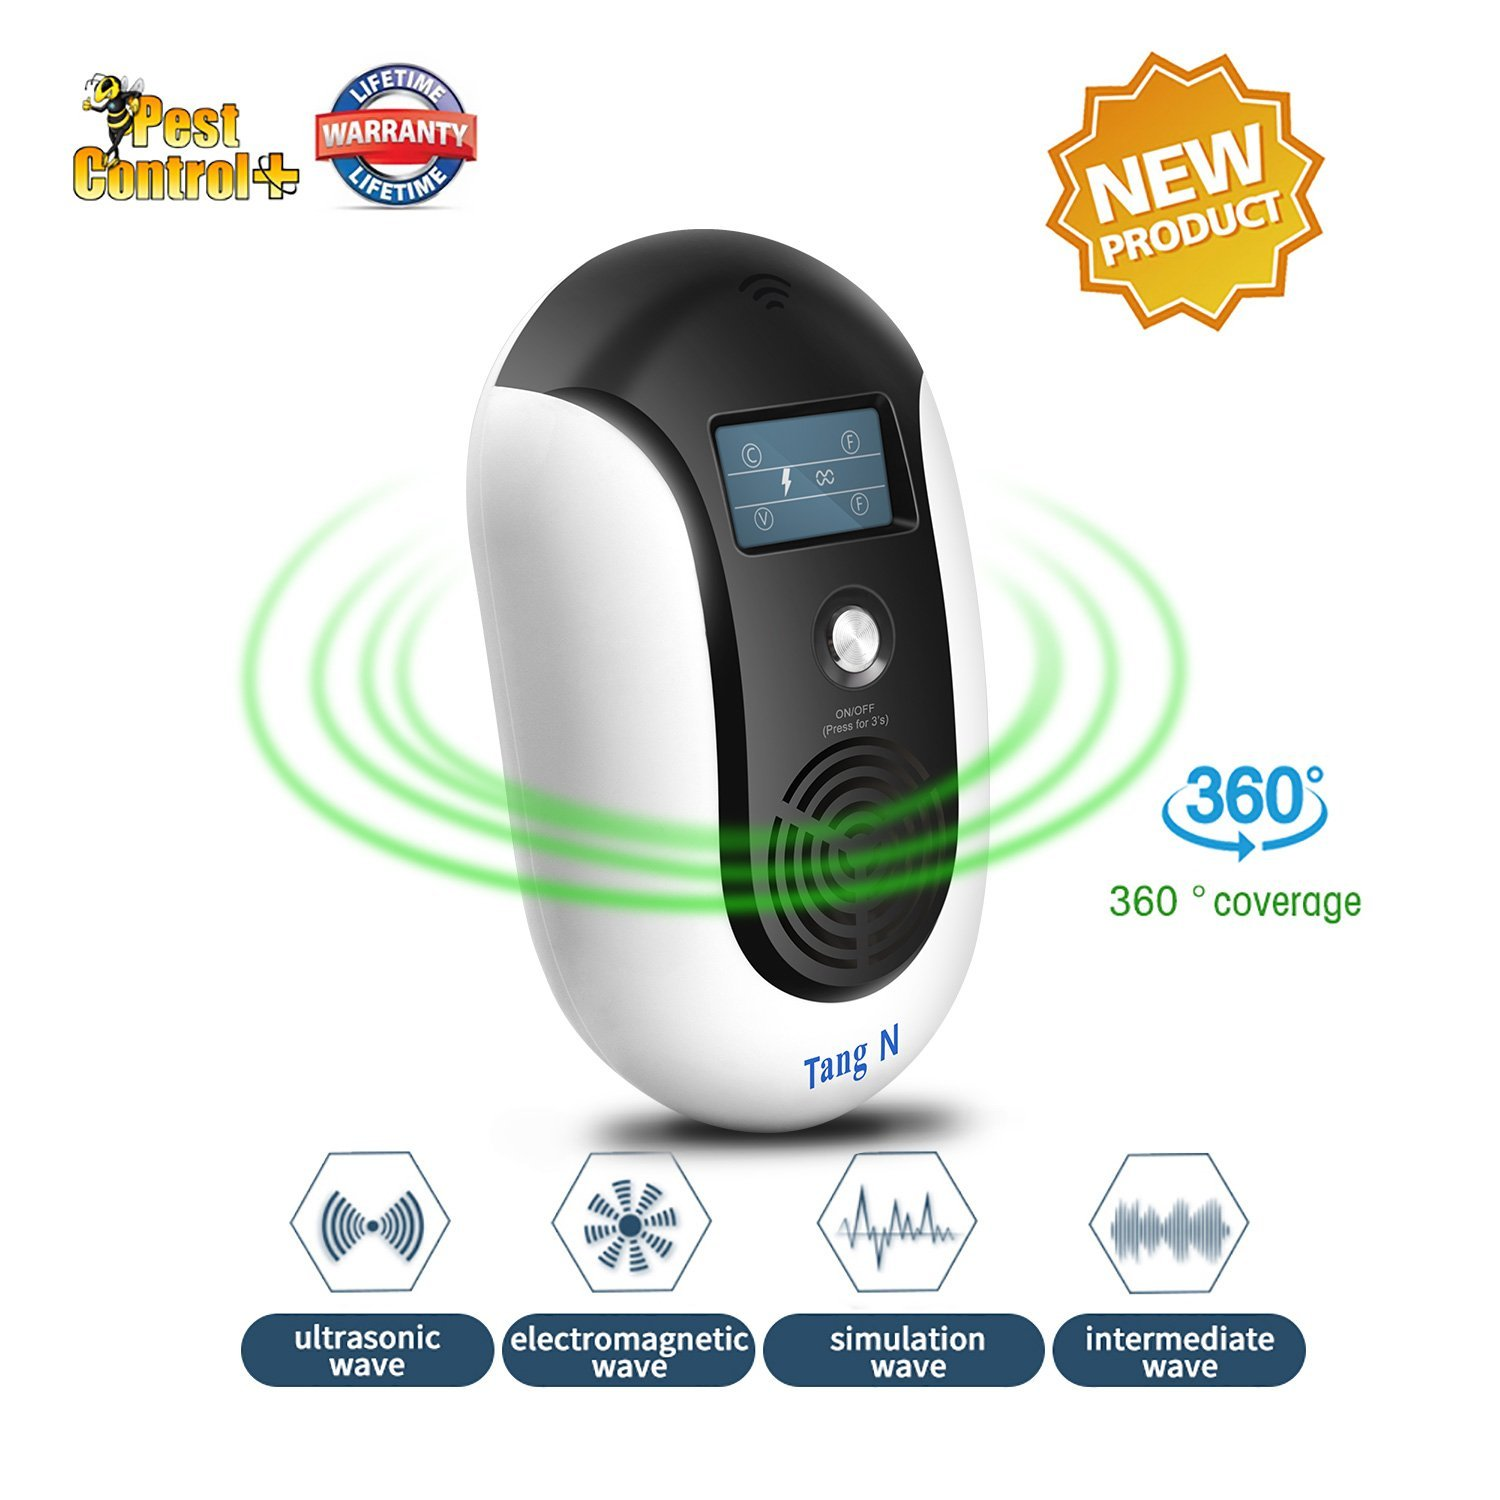 TangN Pest Repellent,Ultrasonic Pest Control Mouse Plug in,Indoor Outdoor Electronic Control Rodent,Mosquito,Insect,Roach,Spider,Ant,Rat And Flea,Safe Control NO Chemicals Ultrasonic Pest Repeller.